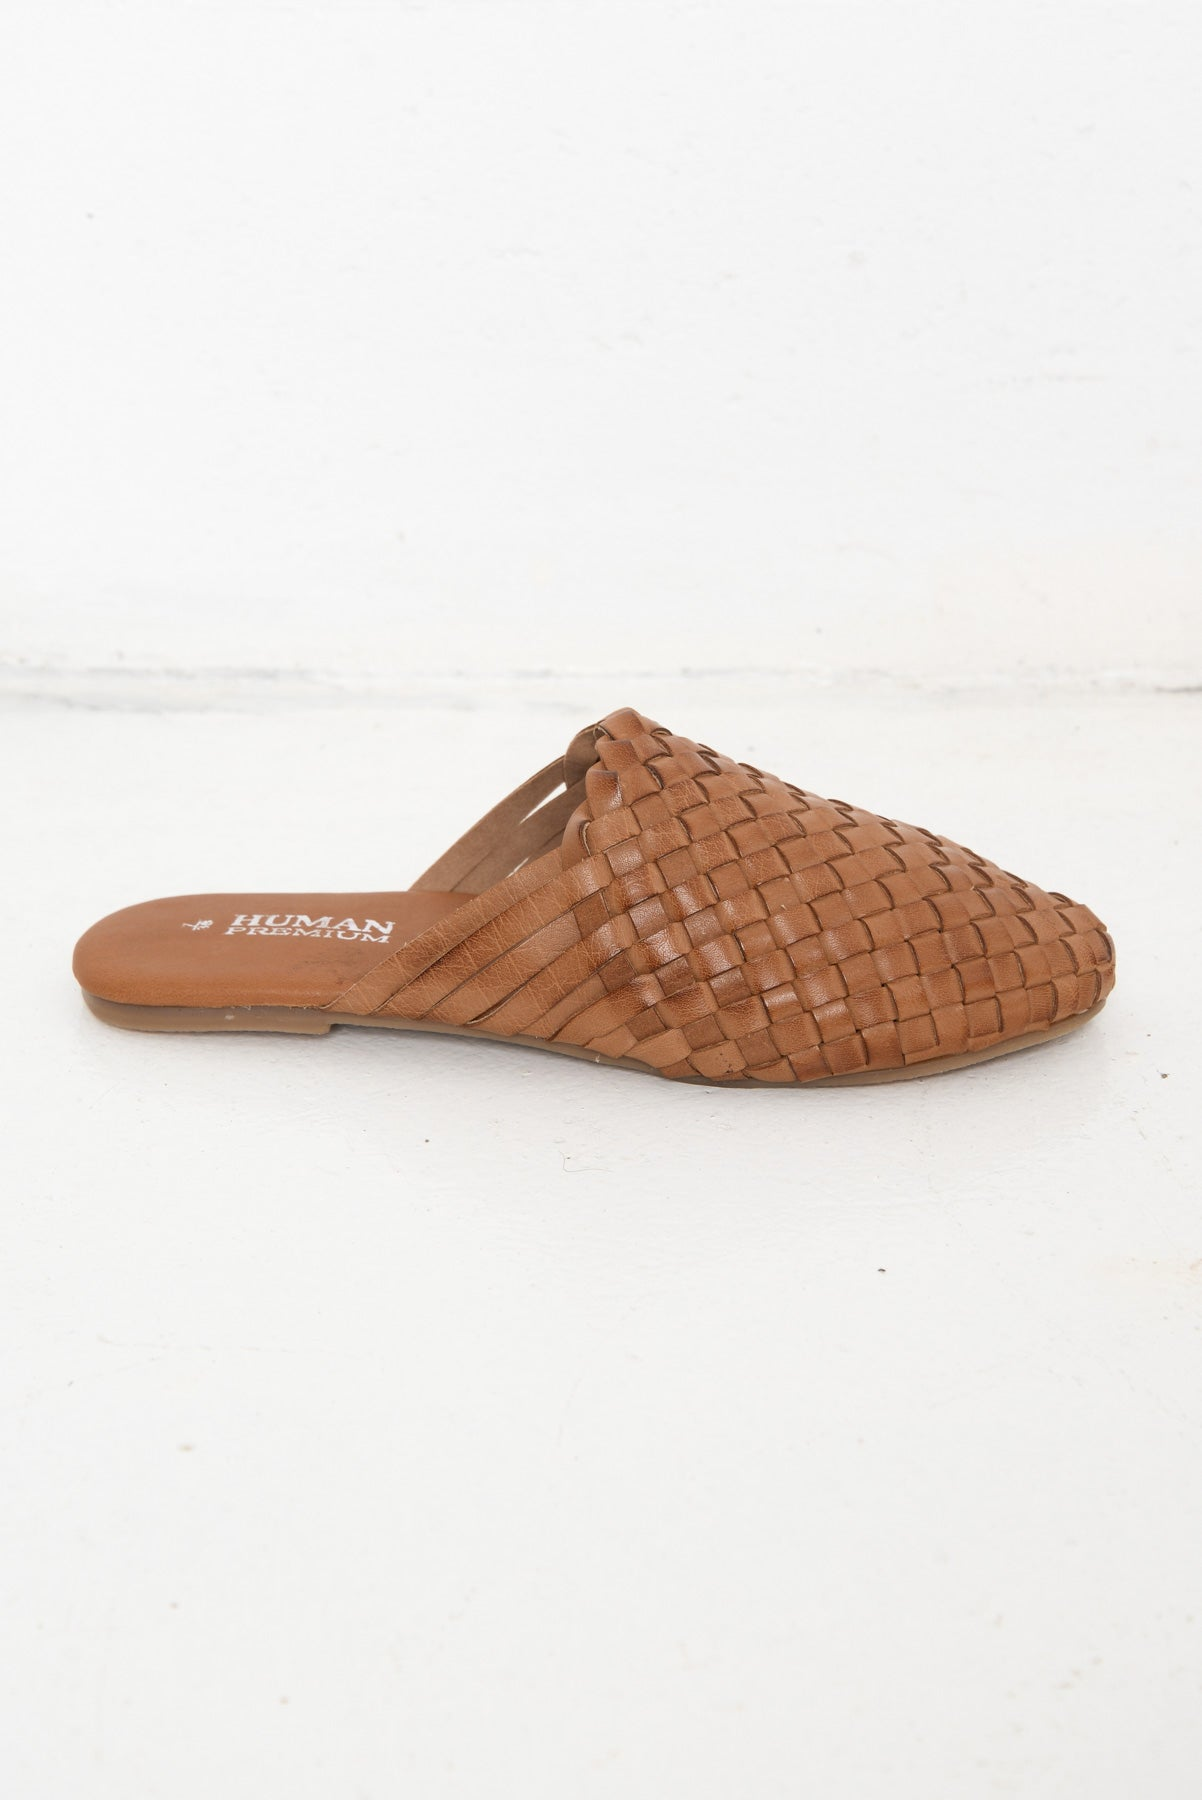 Barland Tan Woven Leather Mule